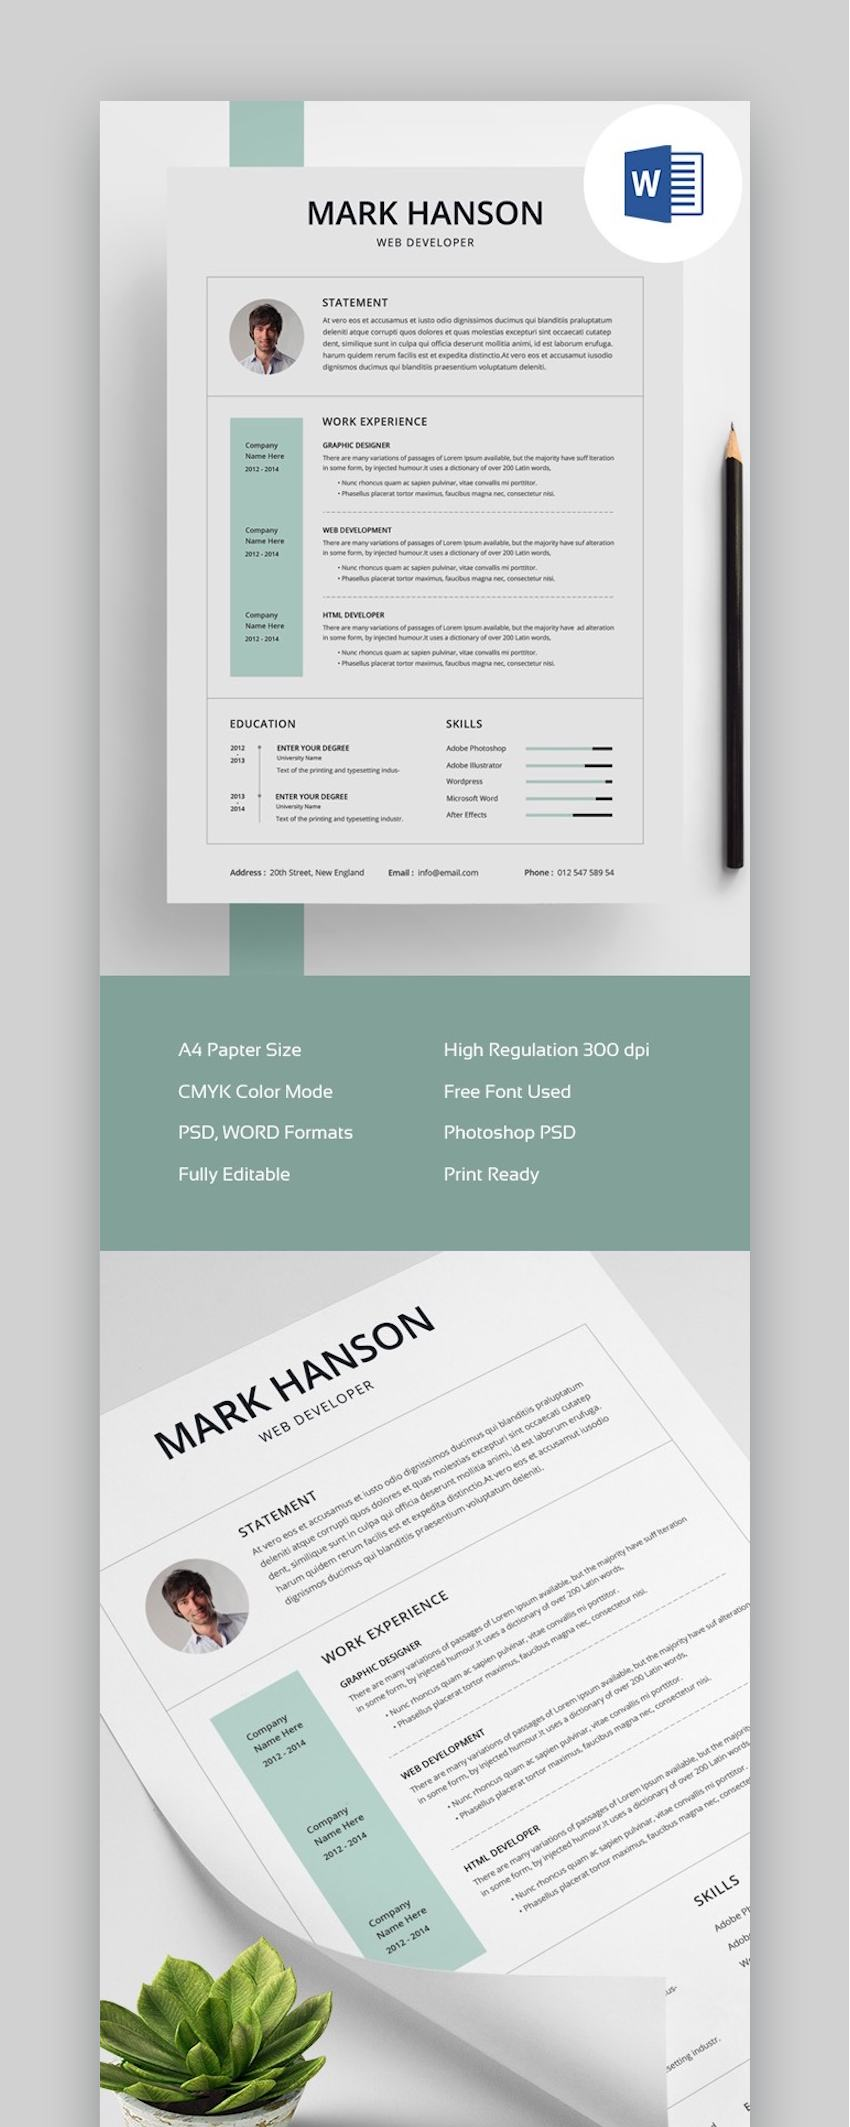 free creative resume templates word downloads for template env clean final architect job Resume Creative Resume Word Template Free Download